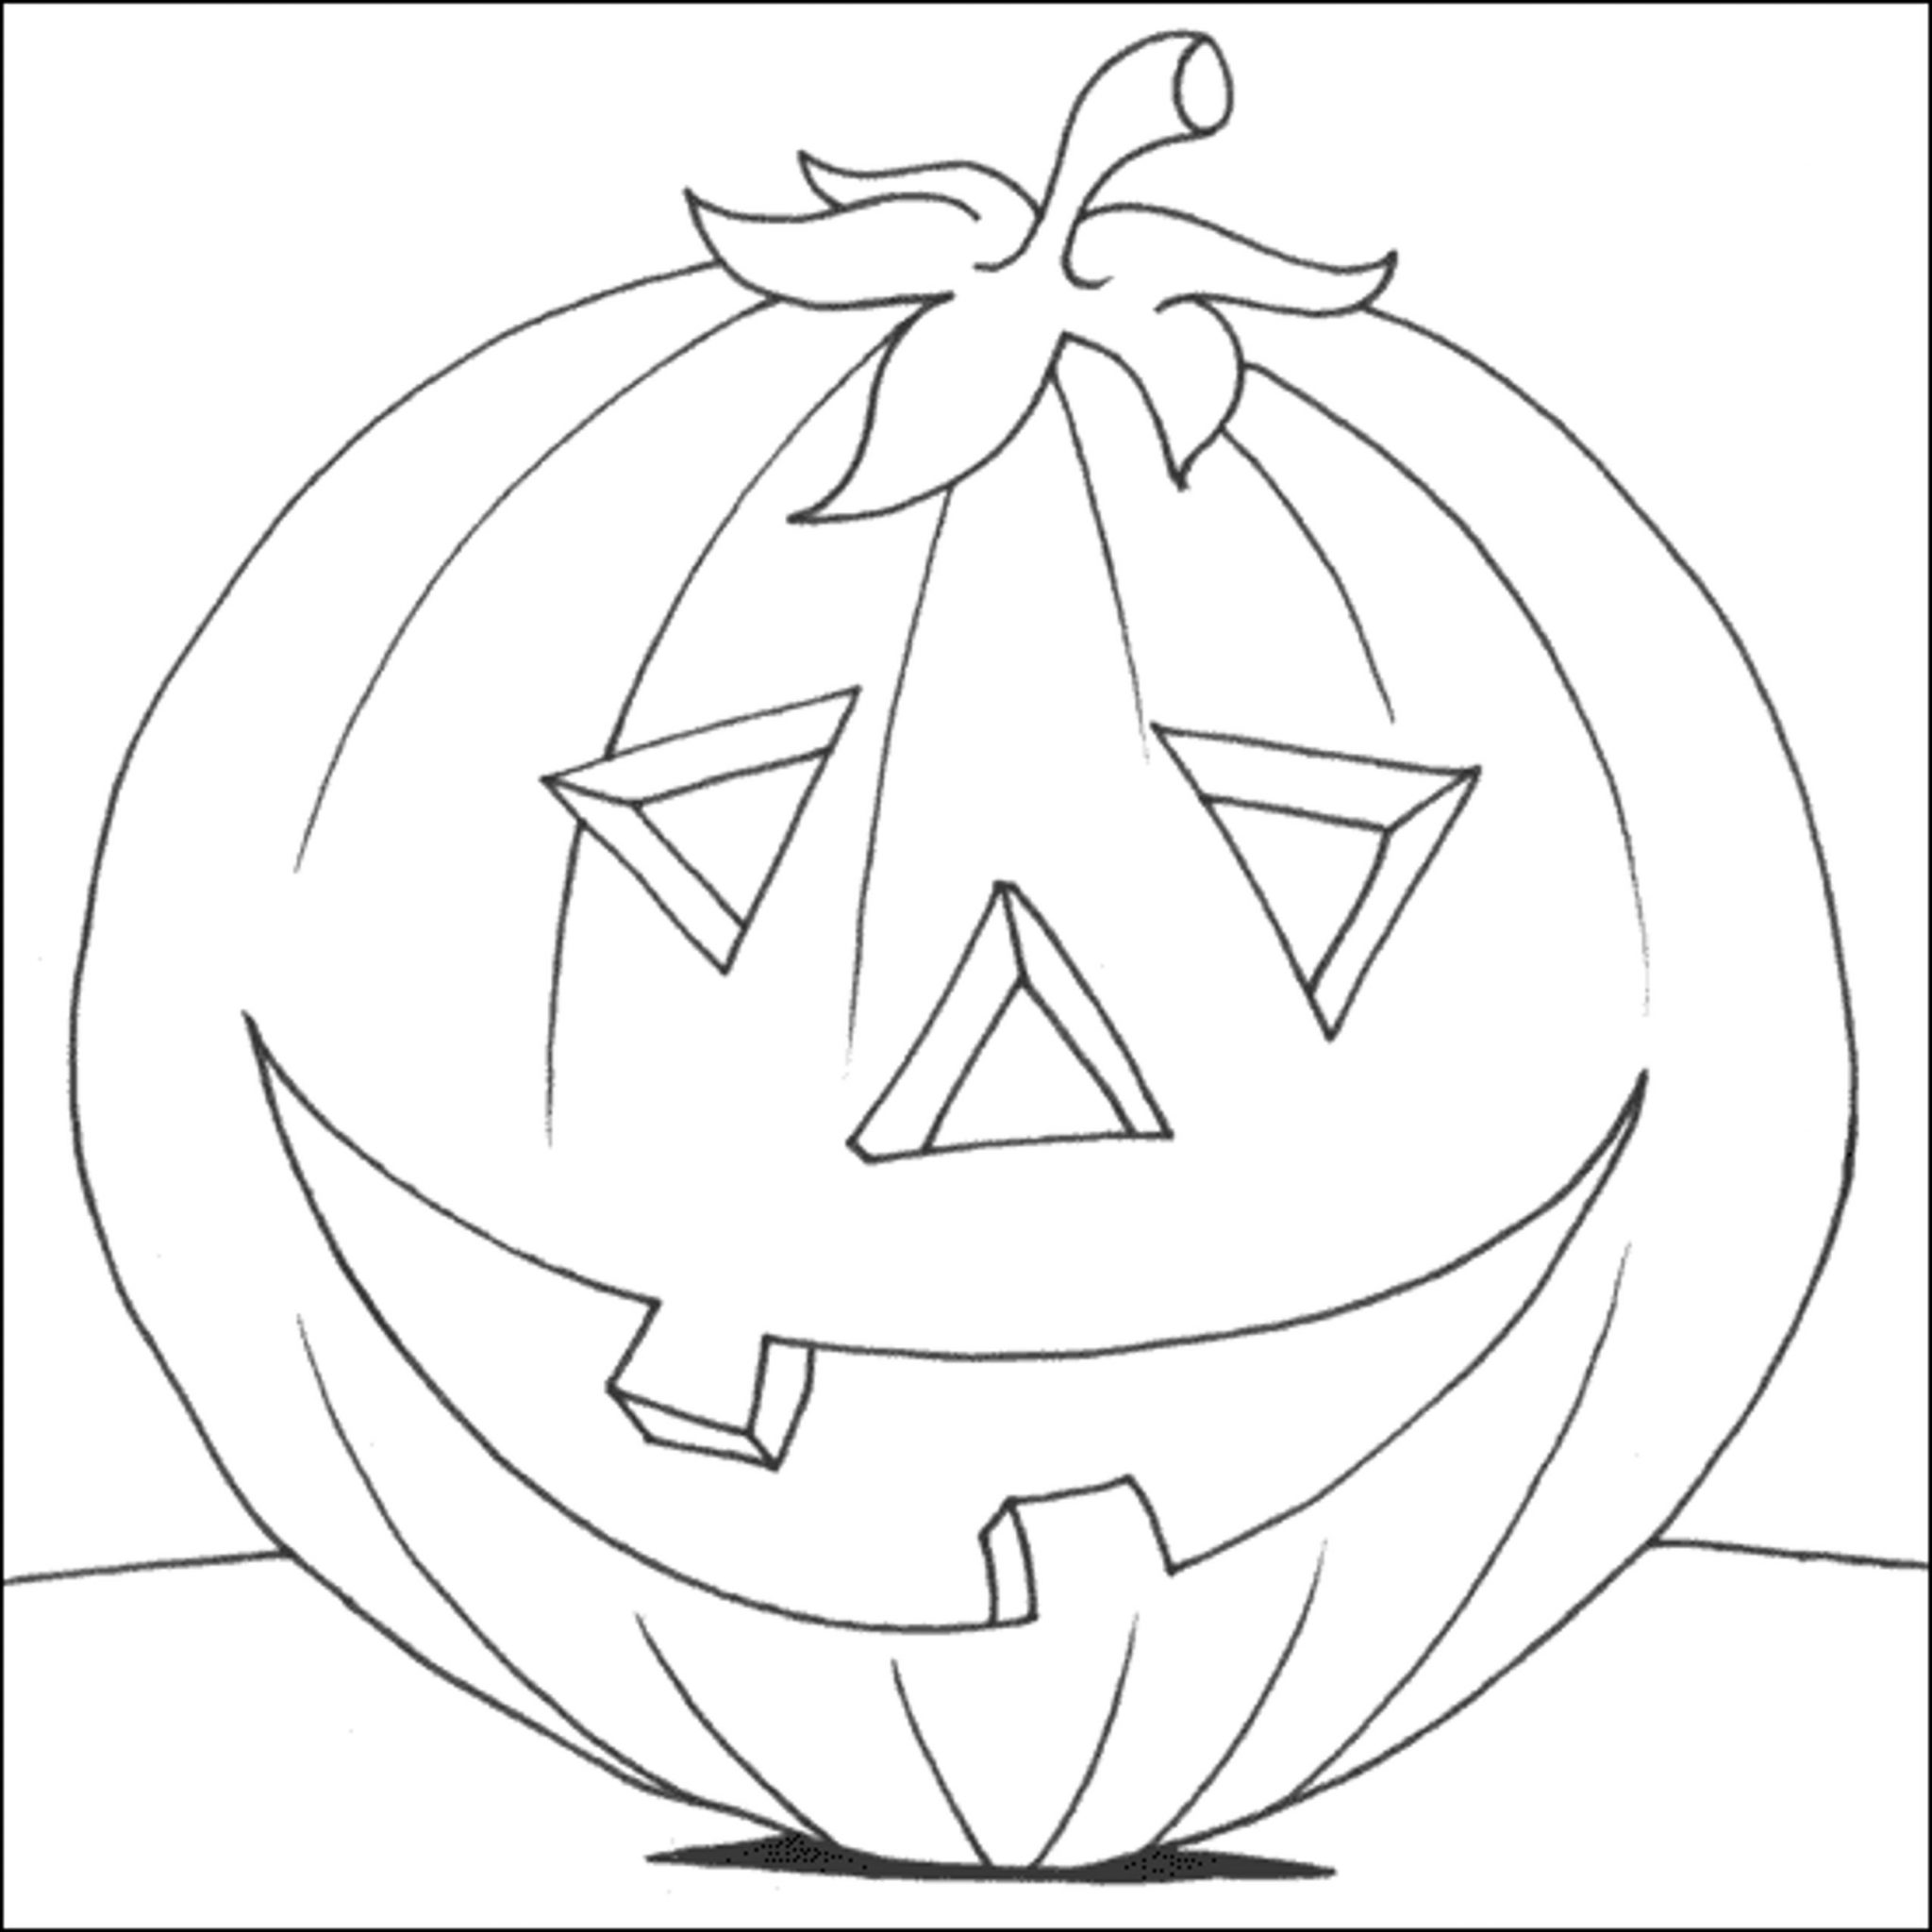 pumpking coloring pages pumpkin two simple pumpkin to color coloring pages pages coloring pumpking